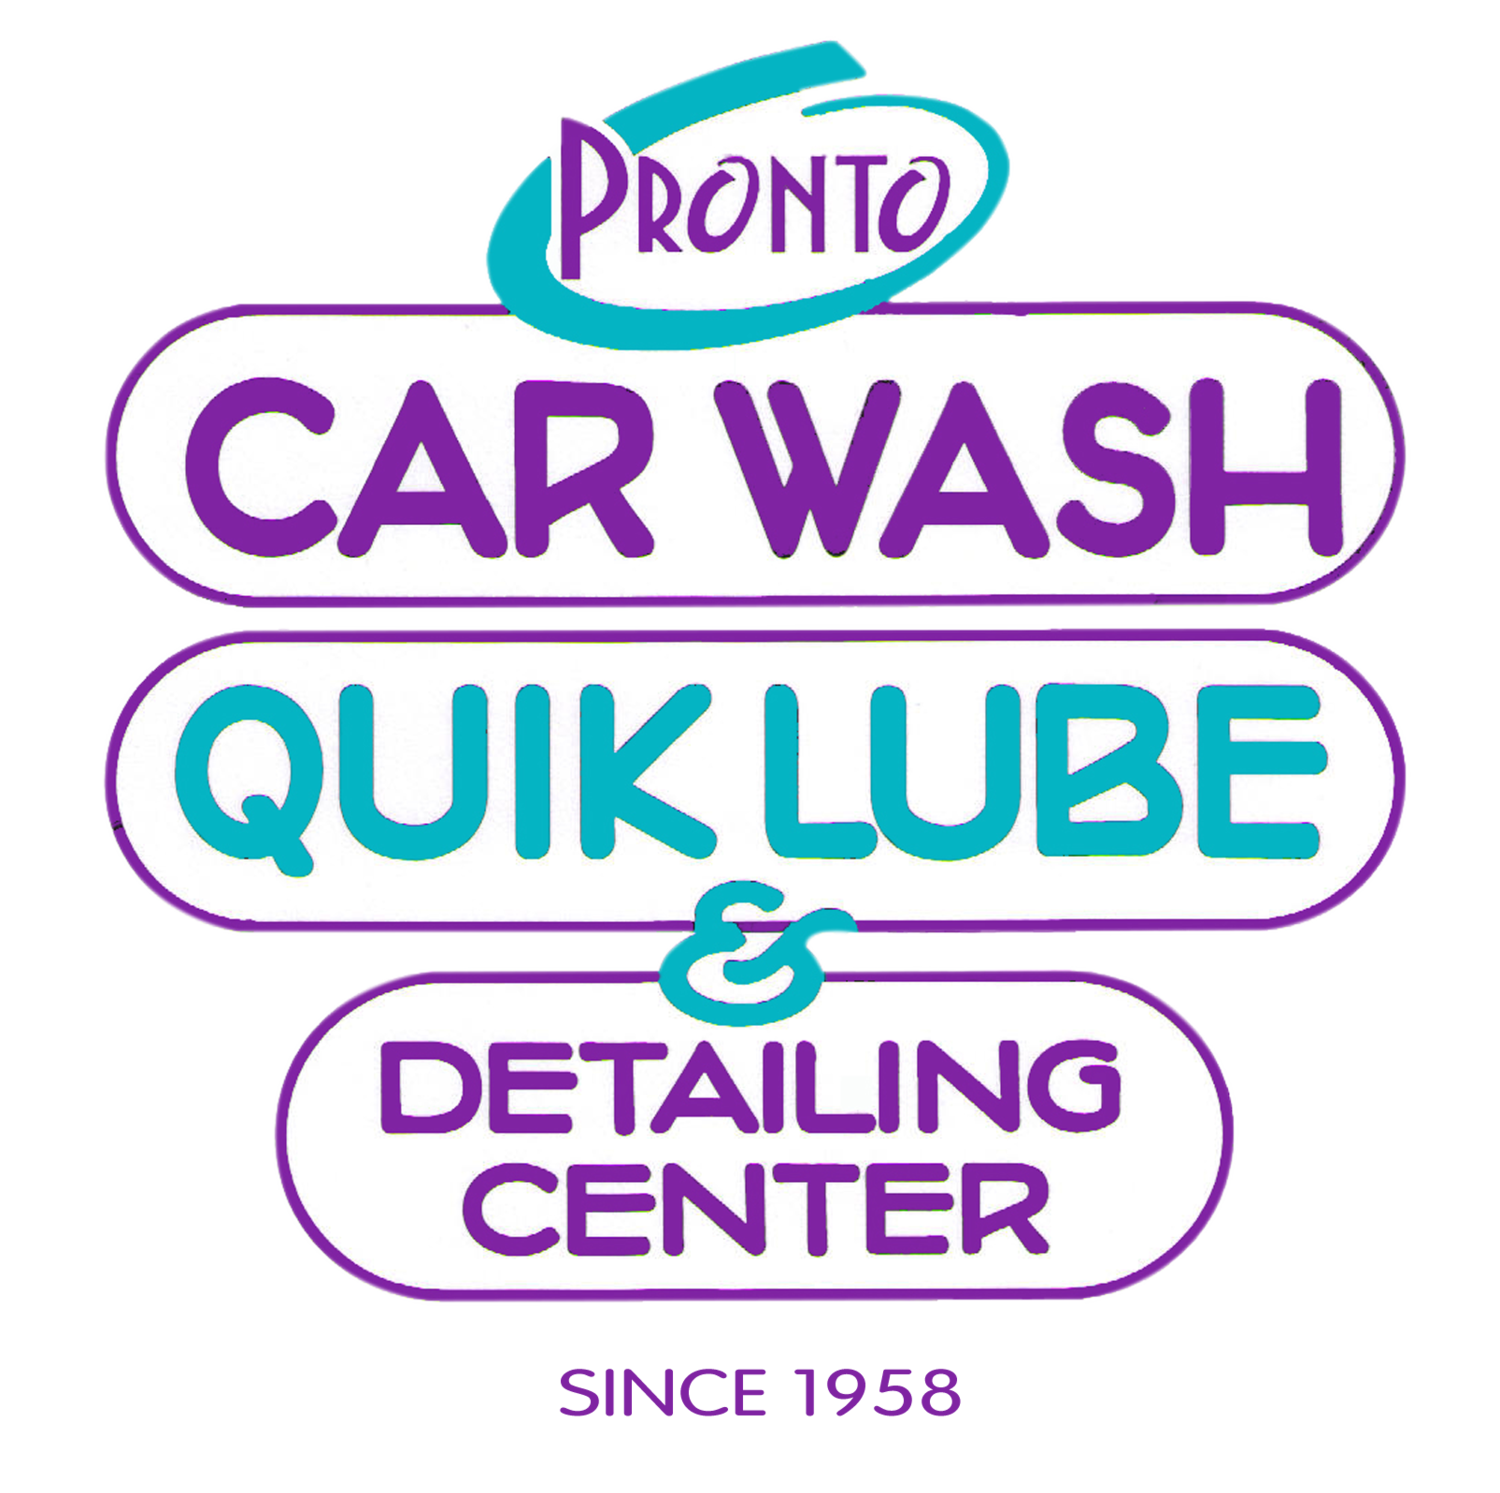 Pronto Car Wash & Quik Lube